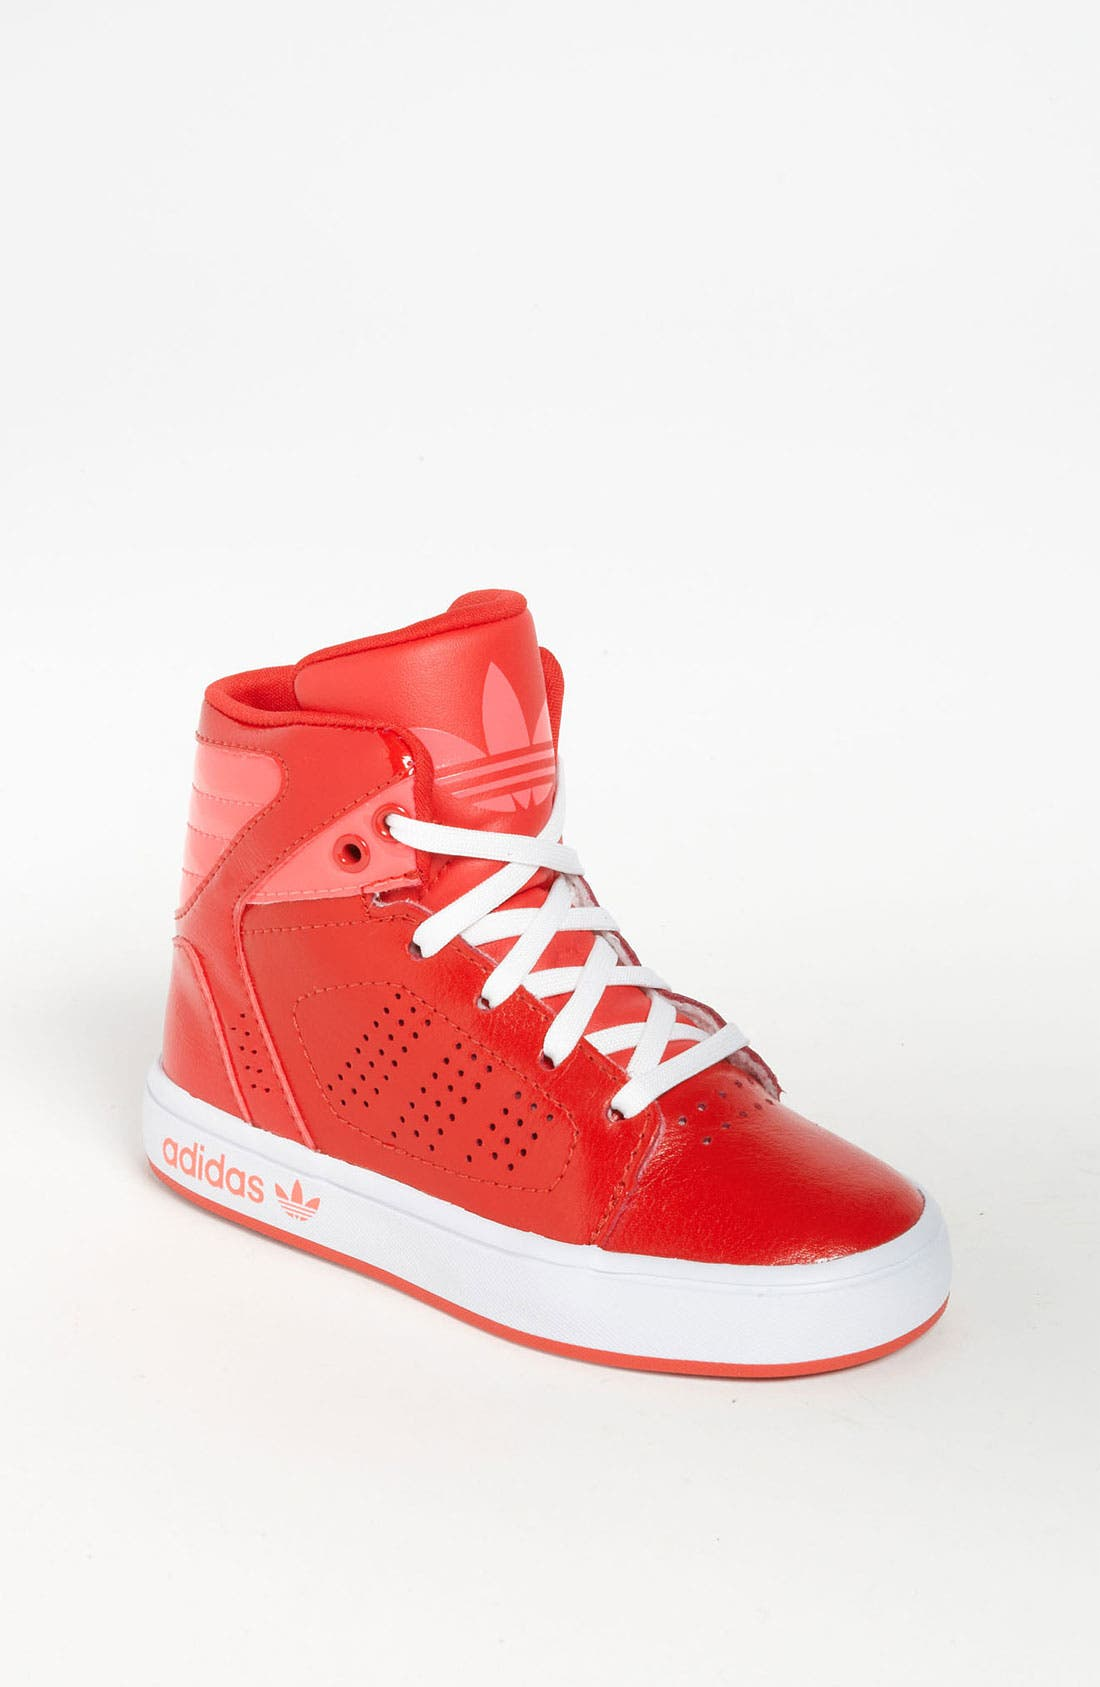 Alternate Image 1 Selected - adidas 'Adi-High Ext' High Top Sneaker (Baby, Walker & Toddler)